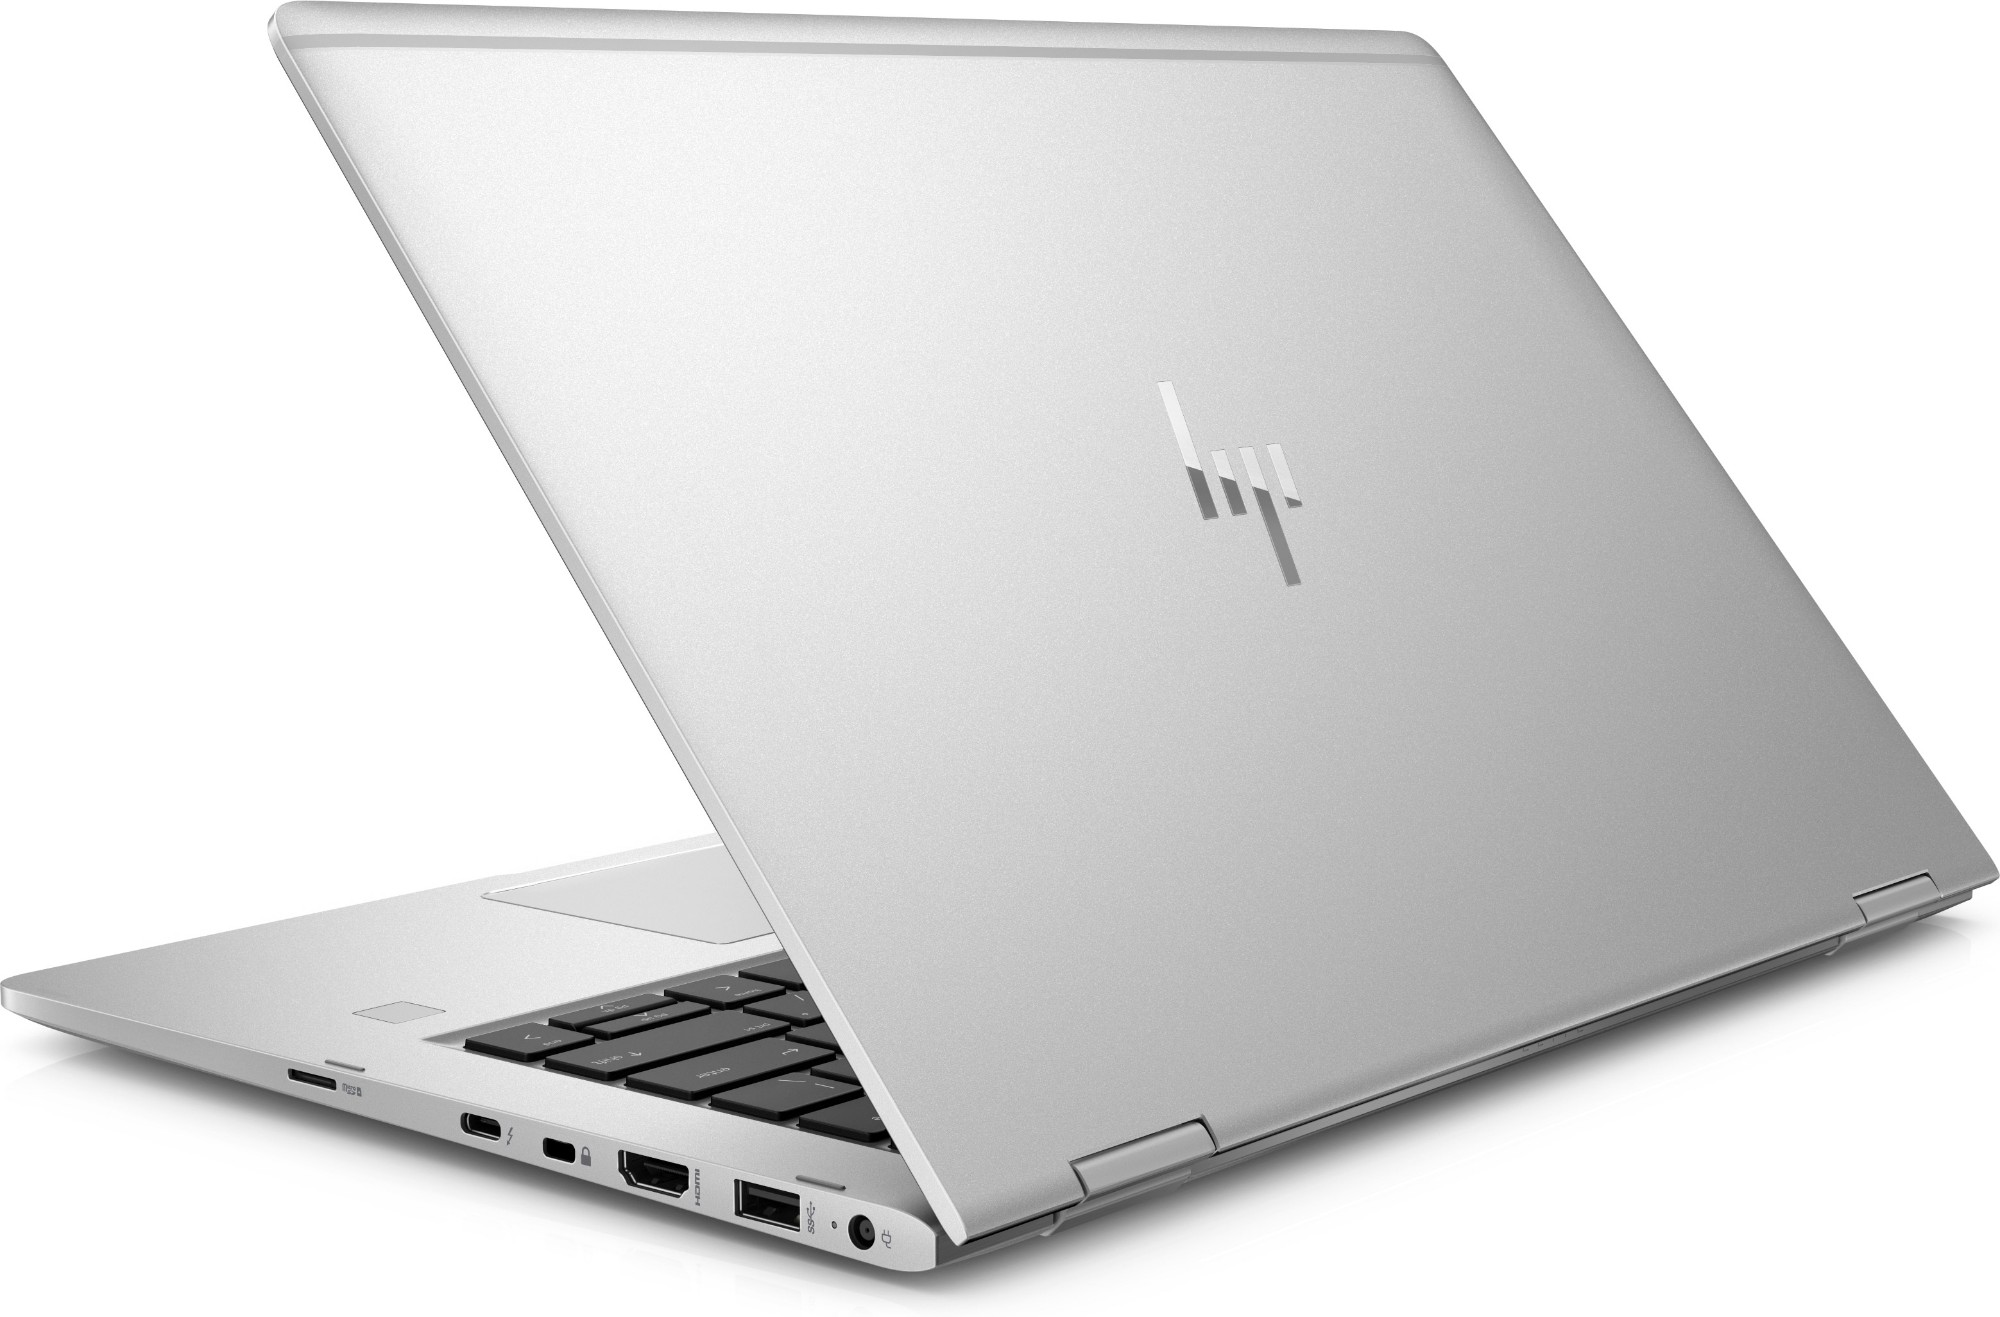 HP EliteBook x360 1030 G2 Silver Hybrid (2-in-1) 33 8 cm (13 3